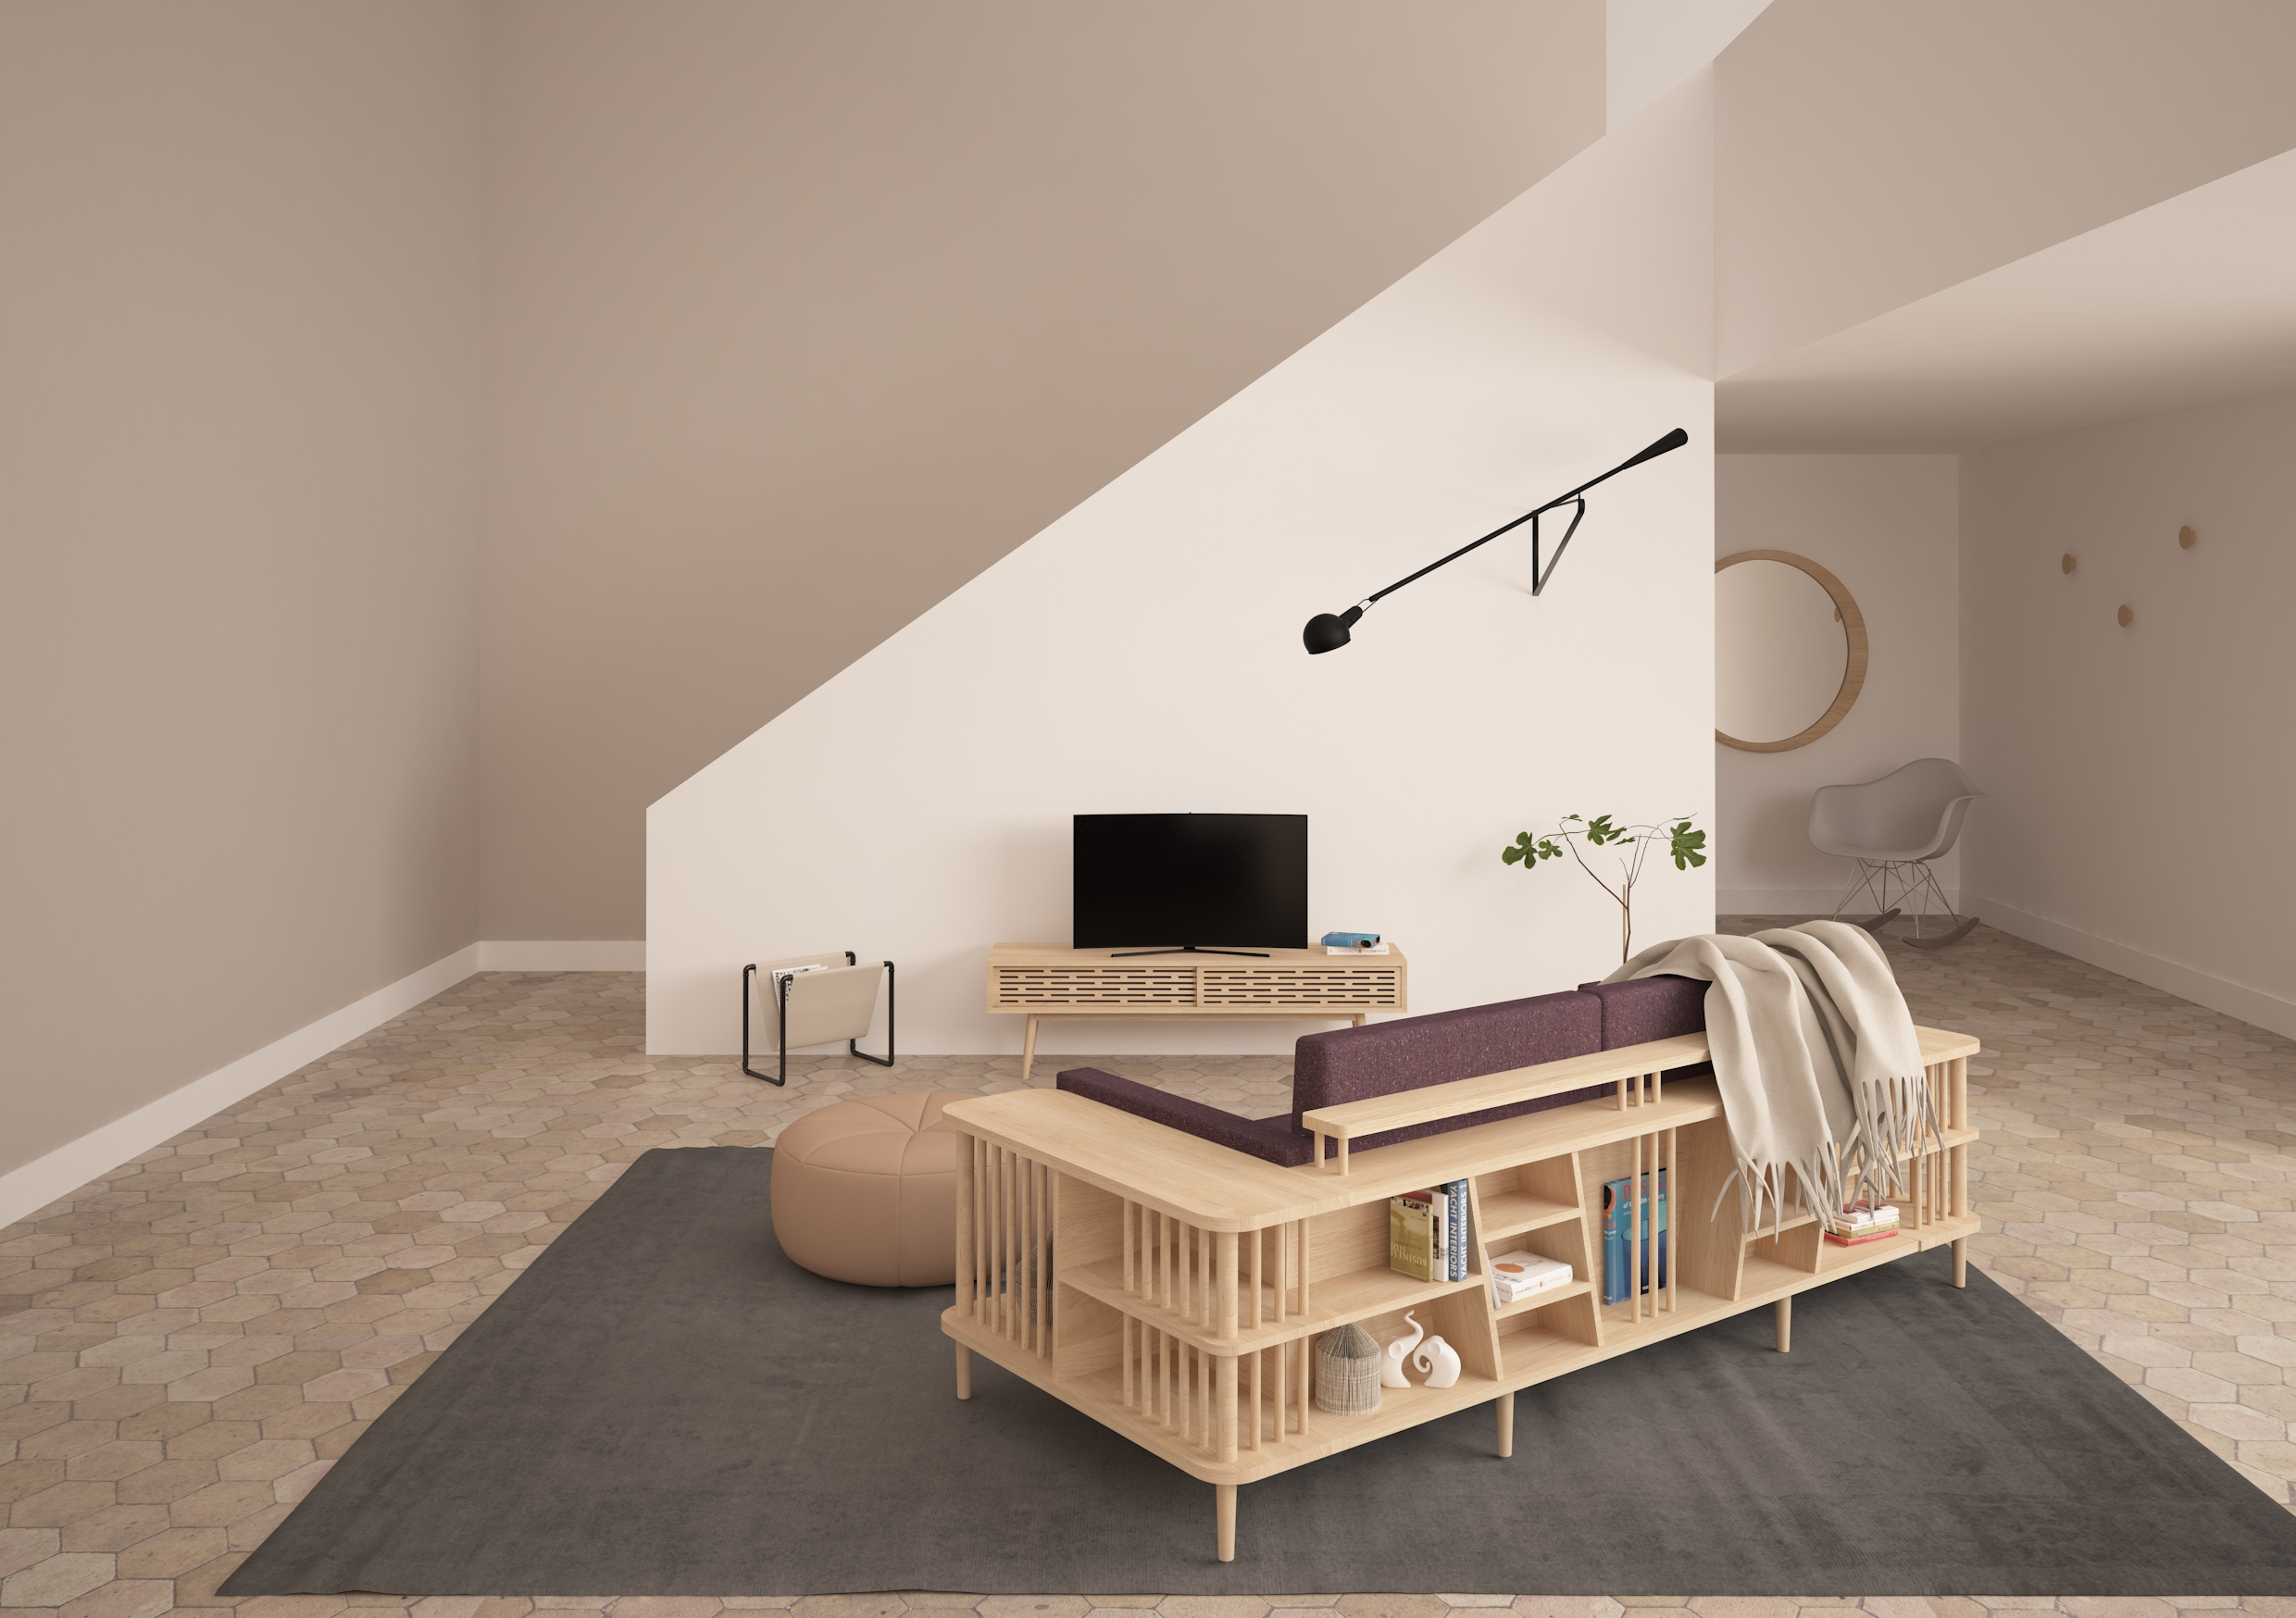 SCAFFOLD sofa  from WEWOOD is a versatile piece, being a sofa and at the same time a bookshelf, creating an exclusive space.